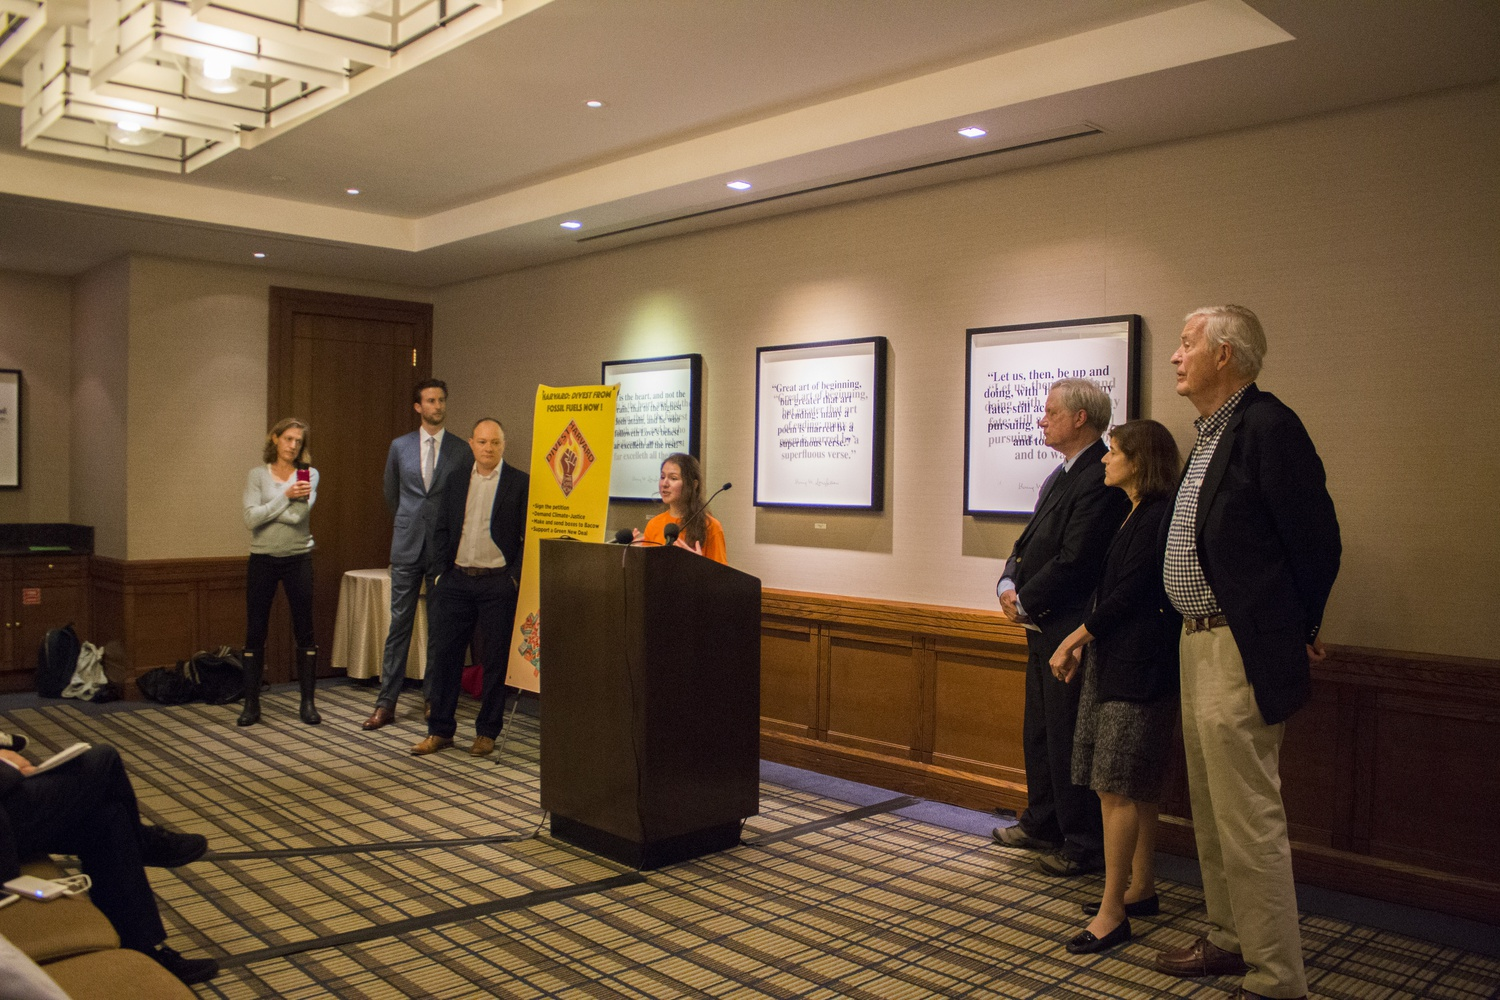 A series of speakers took the mic at the Divest Harvard press conference kicking off Heat Week Monday. Divest Harvard member Ilana Cohen '22, was joined by speakers including Harvard professors, a former U.S. Senator, and a descendent of John D. Rockefeller.